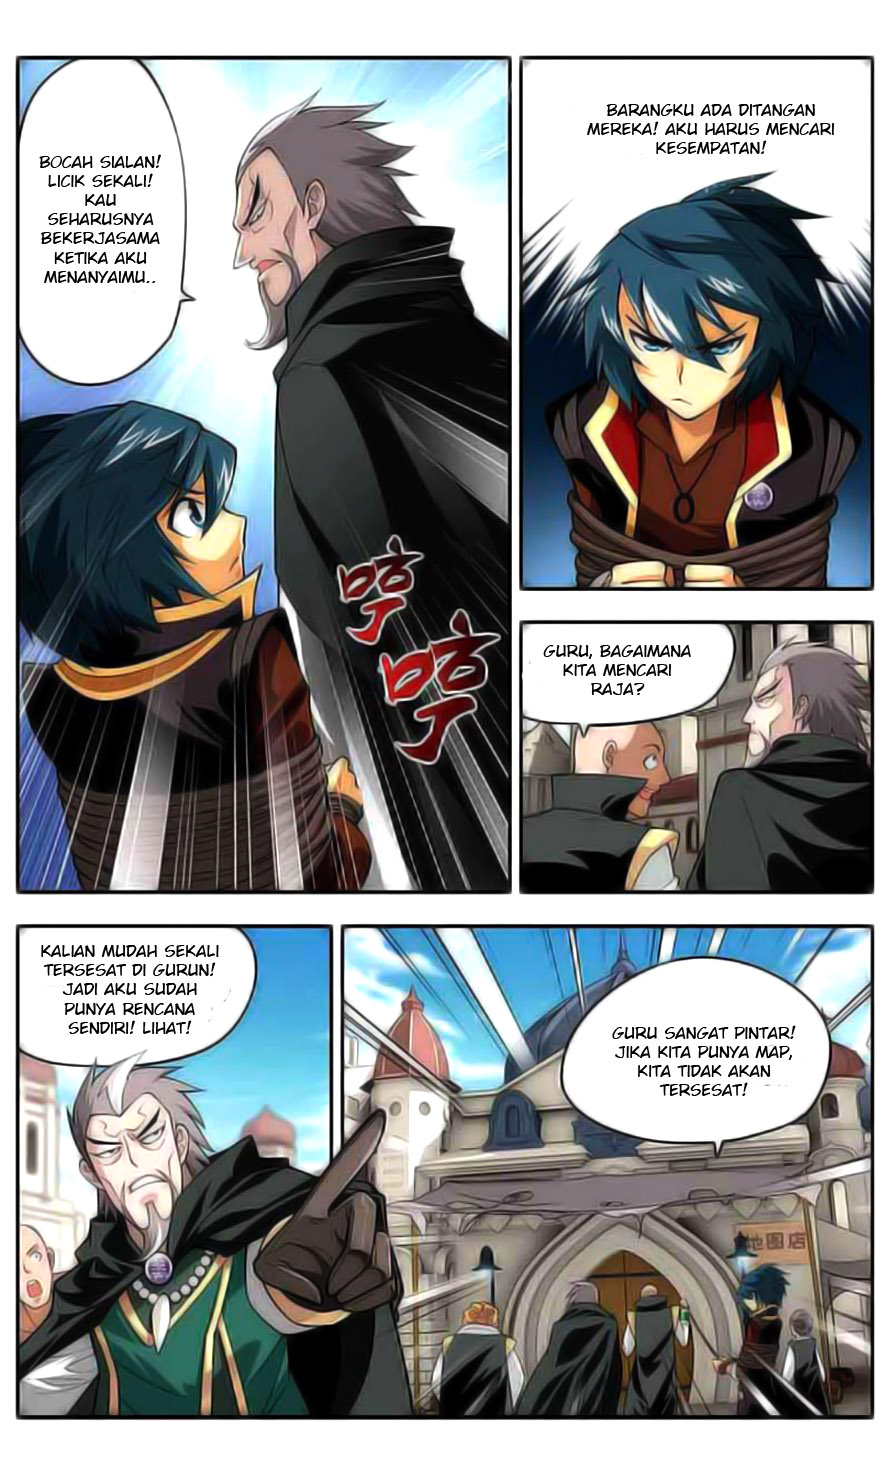 Dilarang COPAS - situs resmi www.mangacanblog.com - Komik battle through heaven 038 - chapter 38 39 Indonesia battle through heaven 038 - chapter 38 Terbaru 16|Baca Manga Komik Indonesia|Mangacan